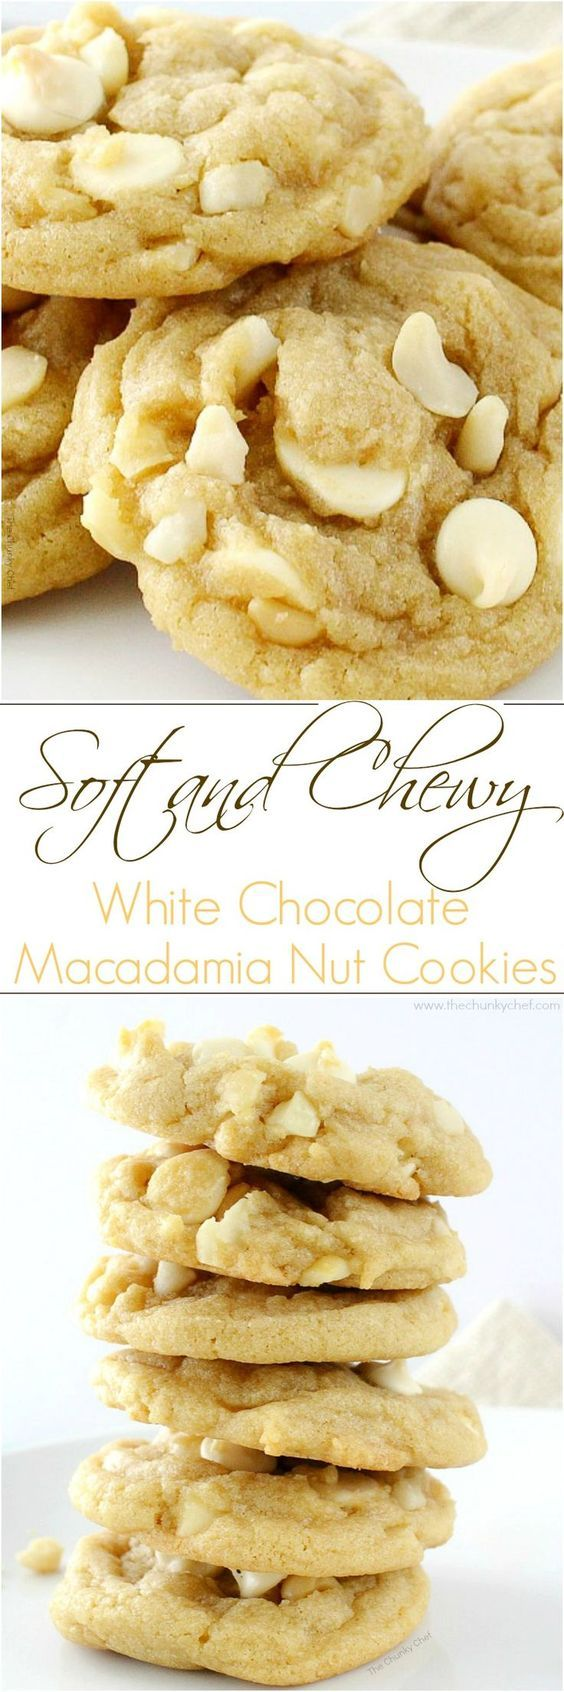 White Chocolate Macadamia Nut Cookies Recipe plus 25 more of the most pinned cookie recipes on Pinterest